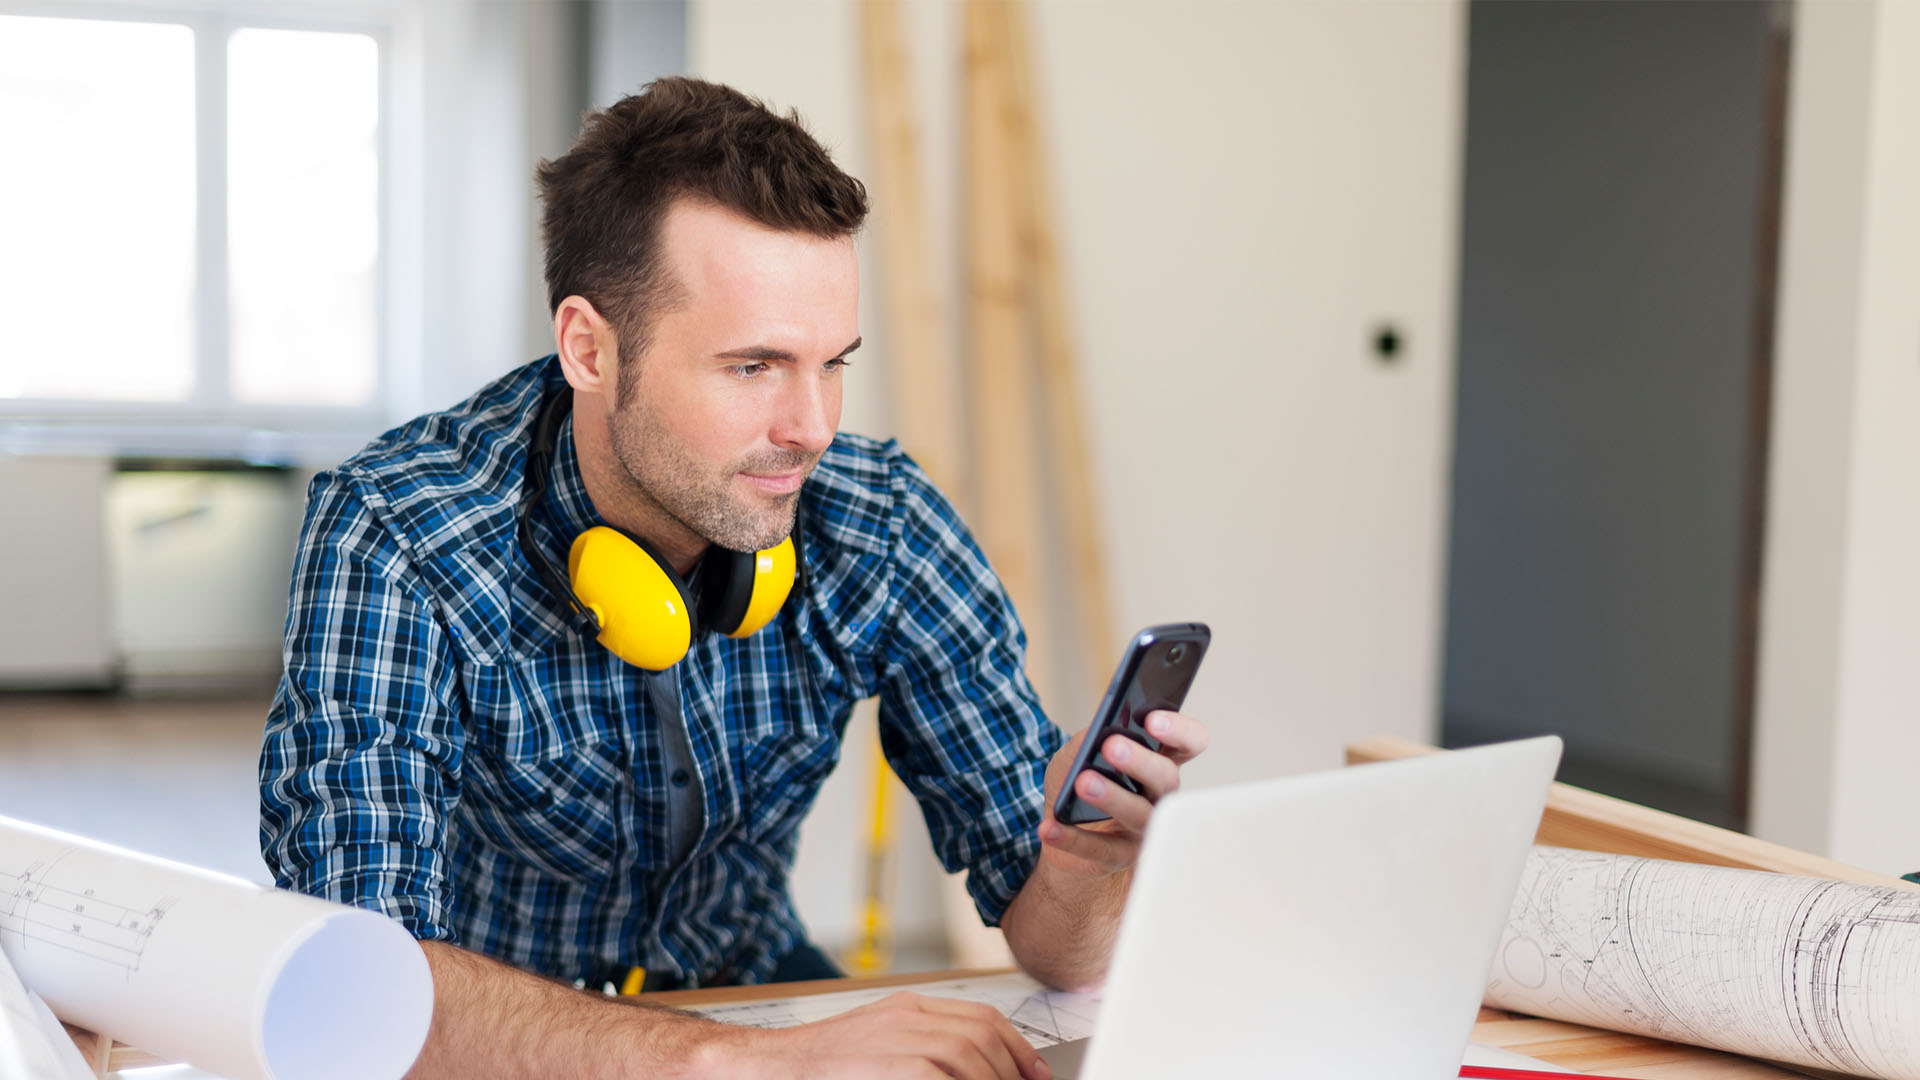 The 4 Unexpected Benefits of an Answering Service for Contractors